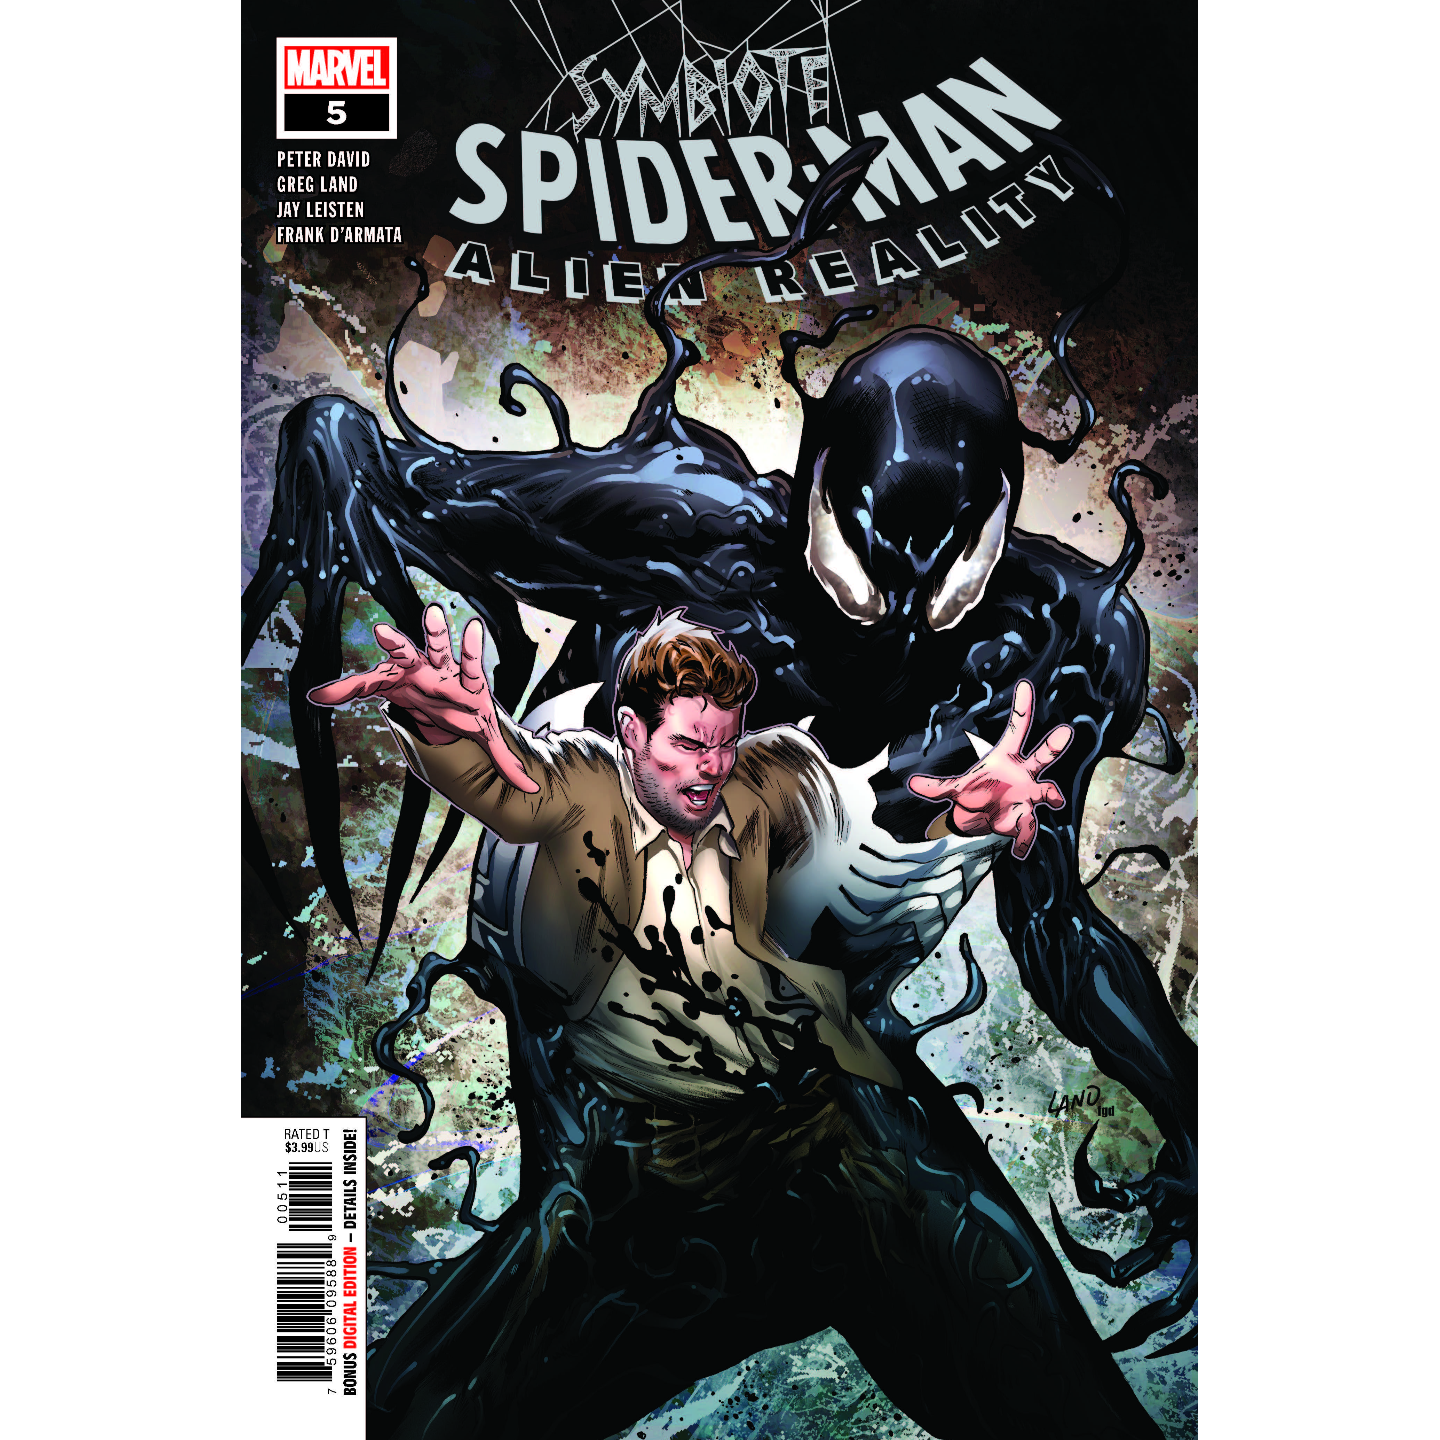 SYMBIOTE SPIDER-MAN ALIEN REALITY #5 (OF 5)